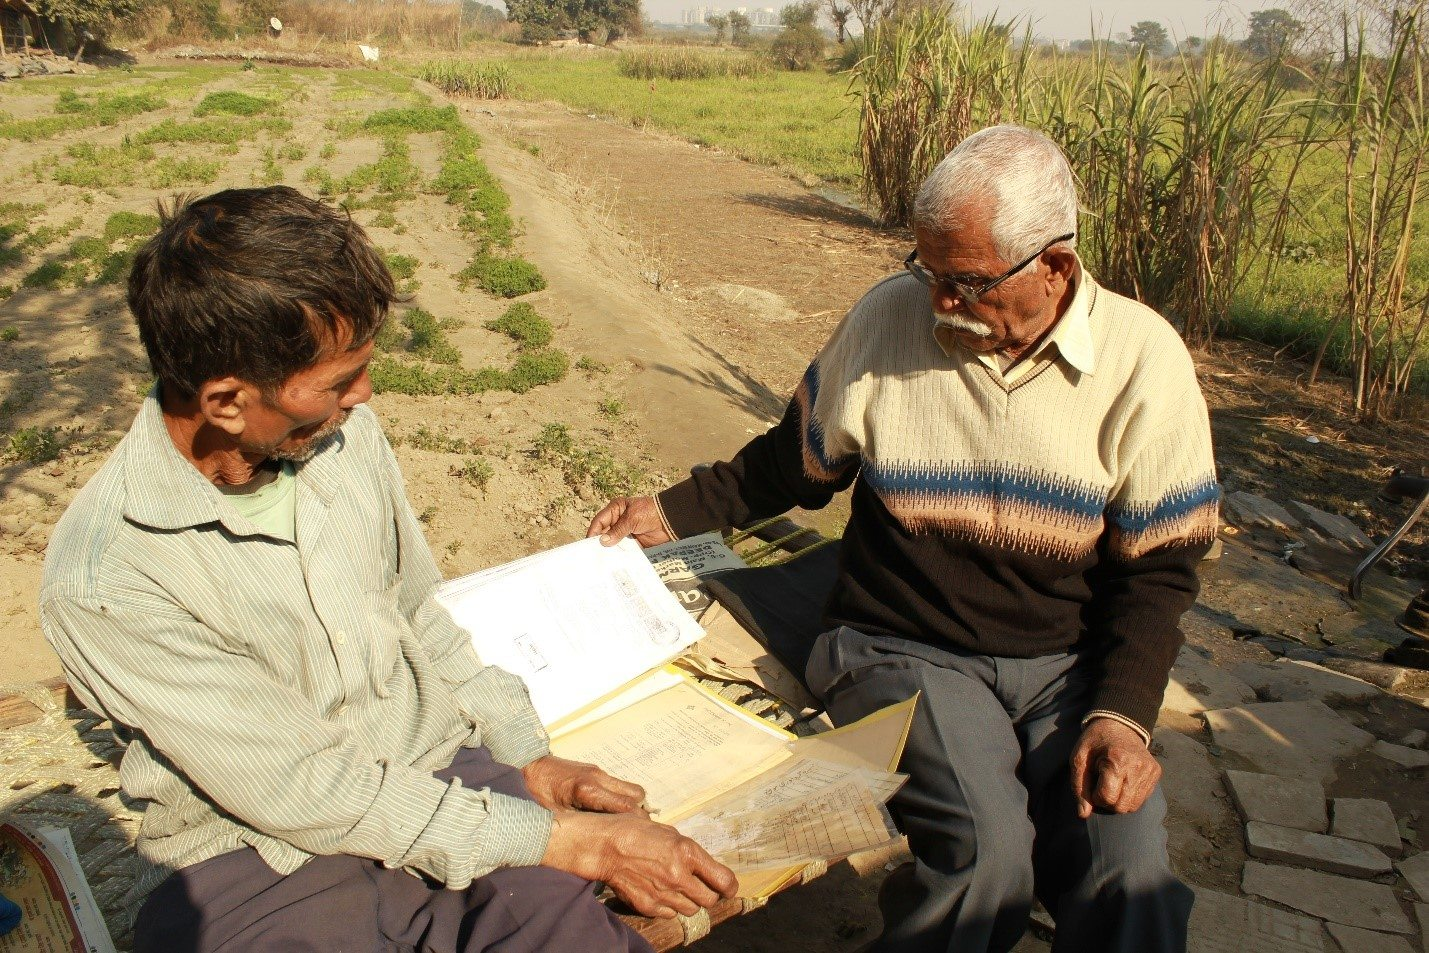 Budh Ram, 62 and Anoop Singh were quick to show the documents of the land and of the case they have been fighting against DDA since 2014 for the right to live on that stretch of land.